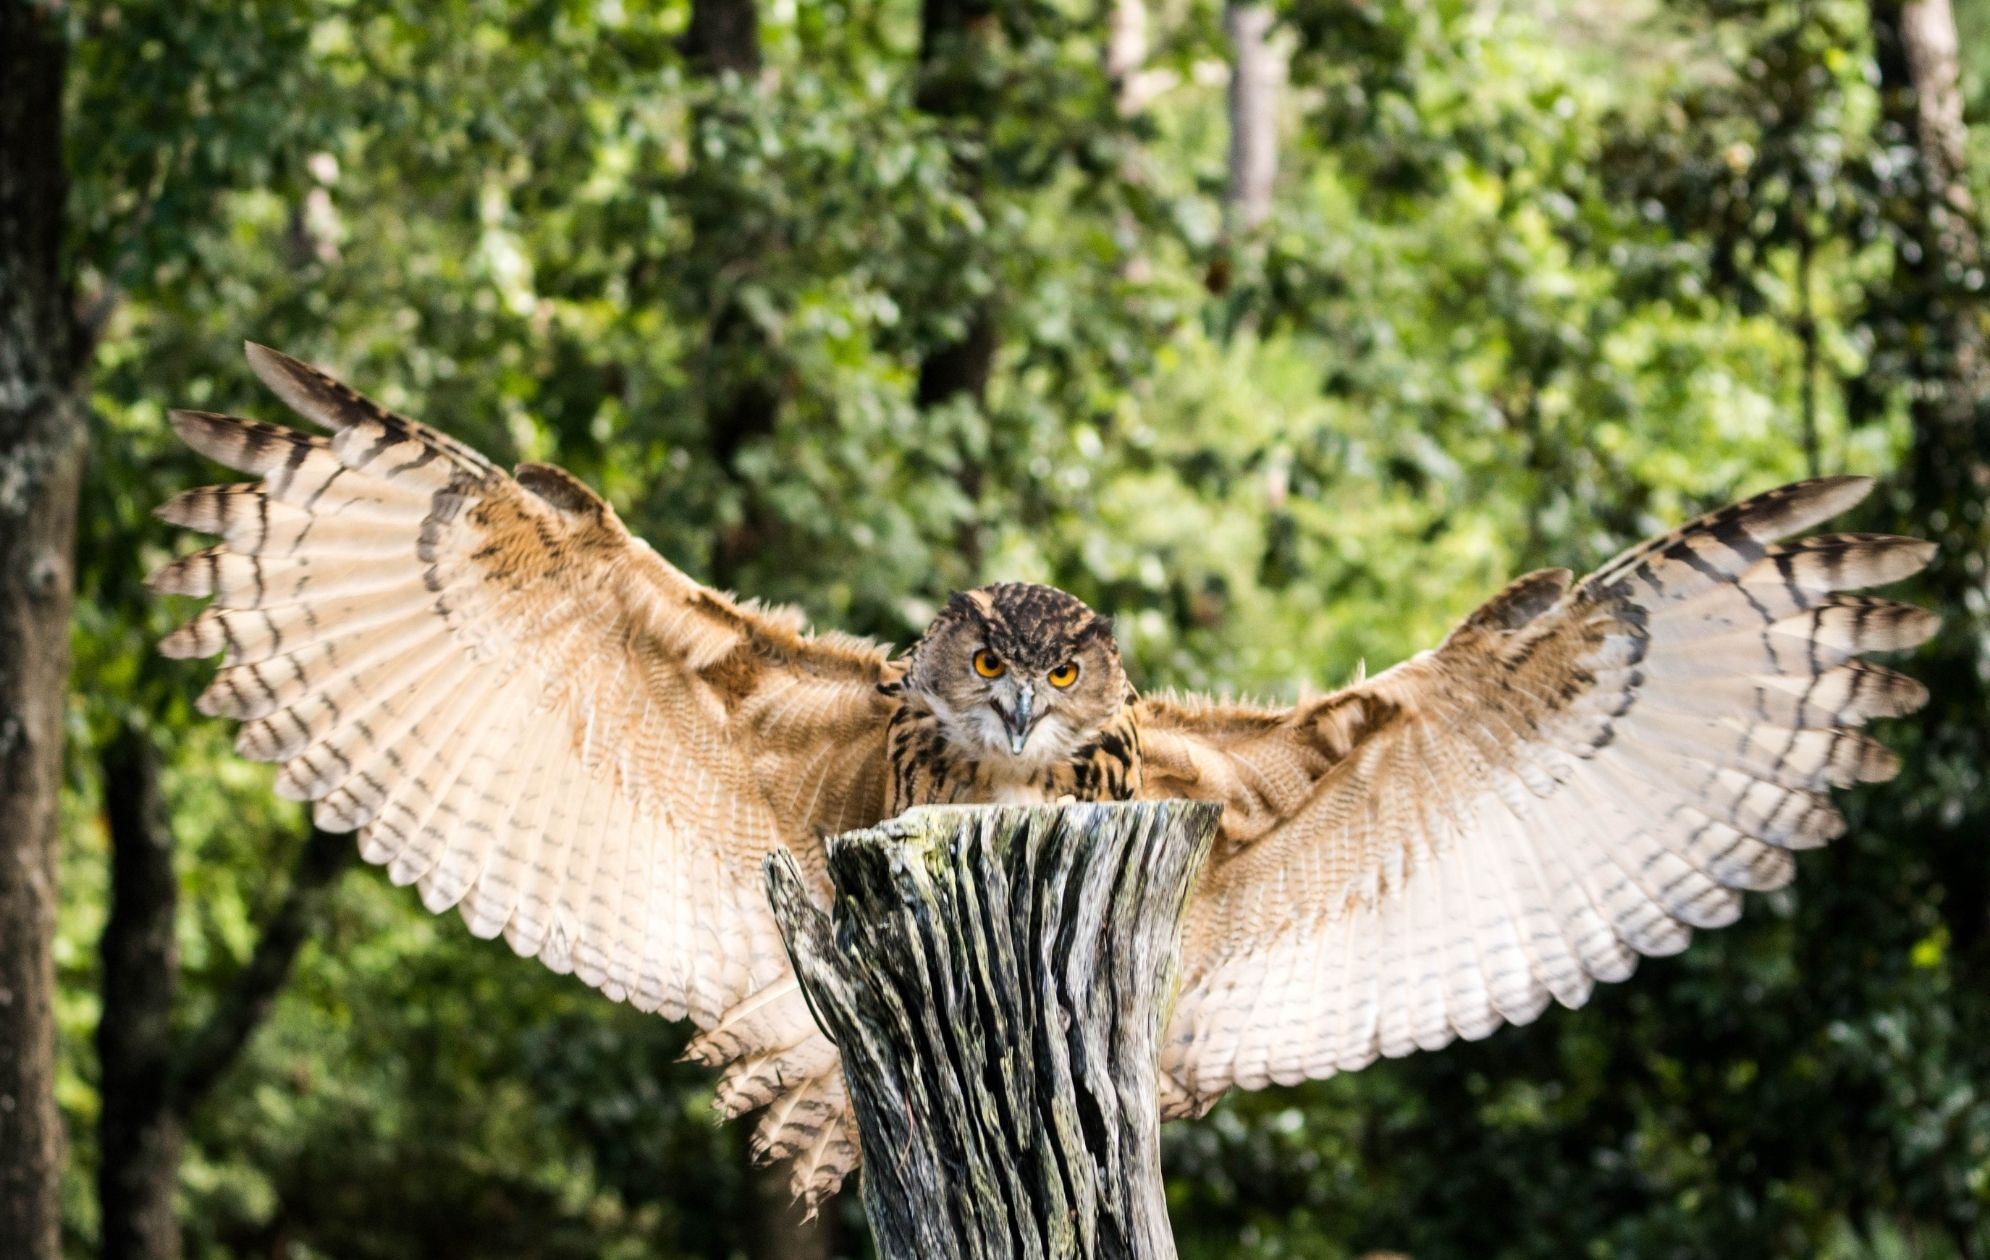 Let's get introduce with Wise Owl